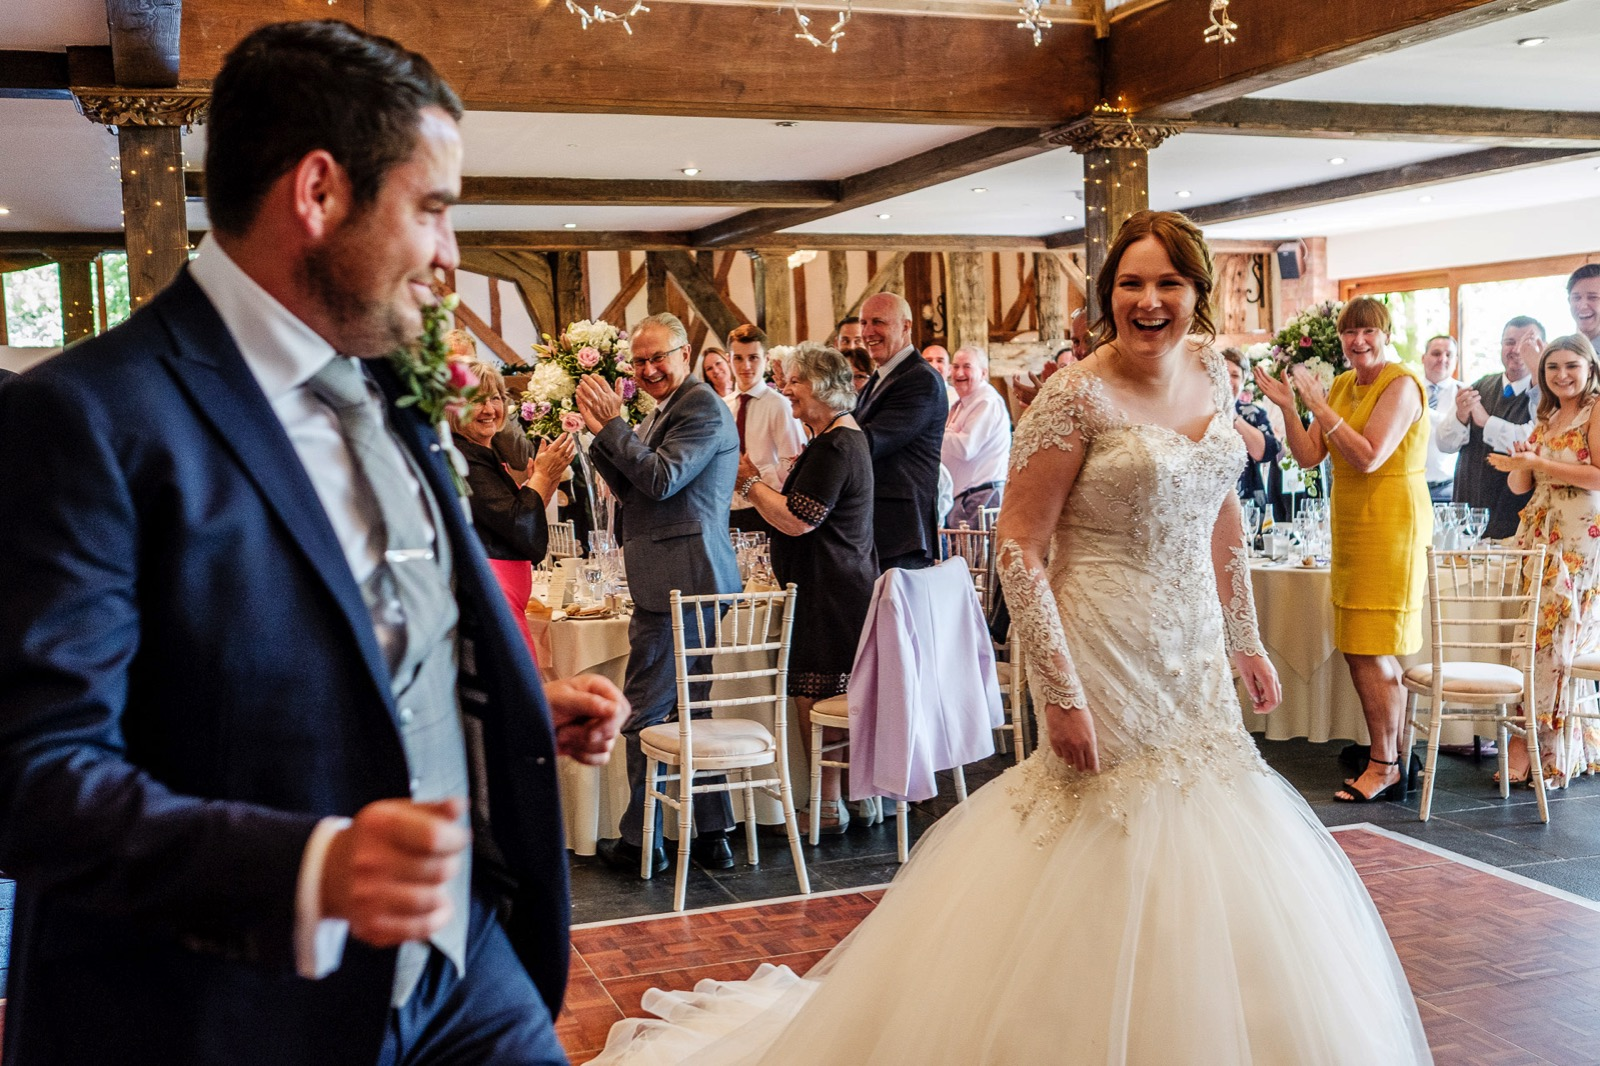 Bride & Groom laughing during their first dance as guests clap